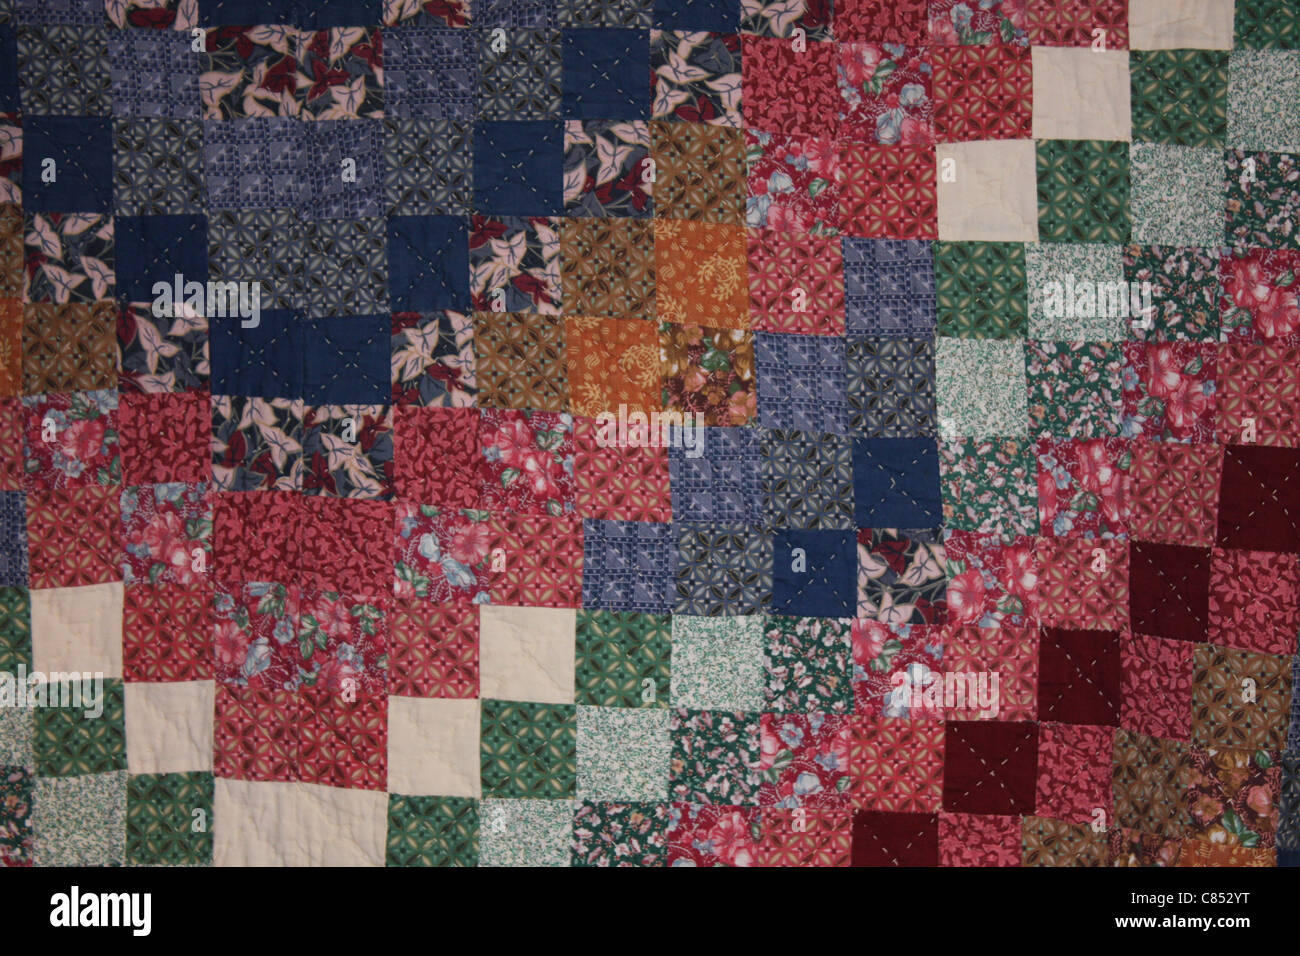 Colorful Amish Quilt in a square pattern - Stock Image